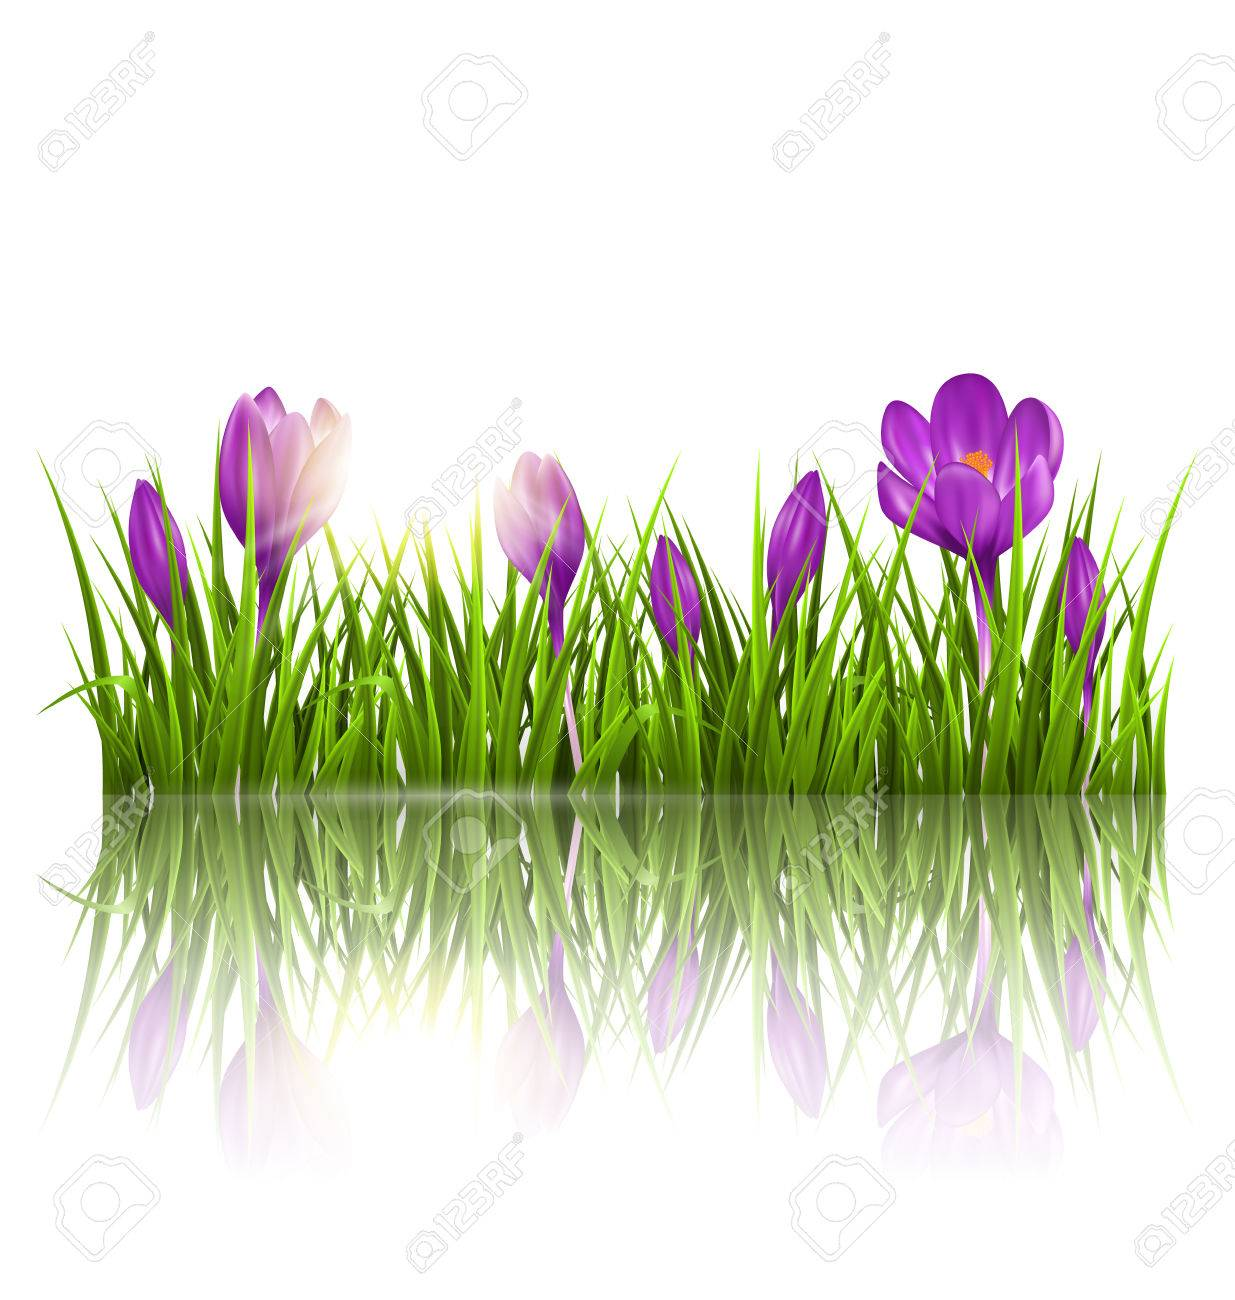 Green grass lawn, violet crocuses and sunrise with reflection on white. Floral nature spring background - 37483649